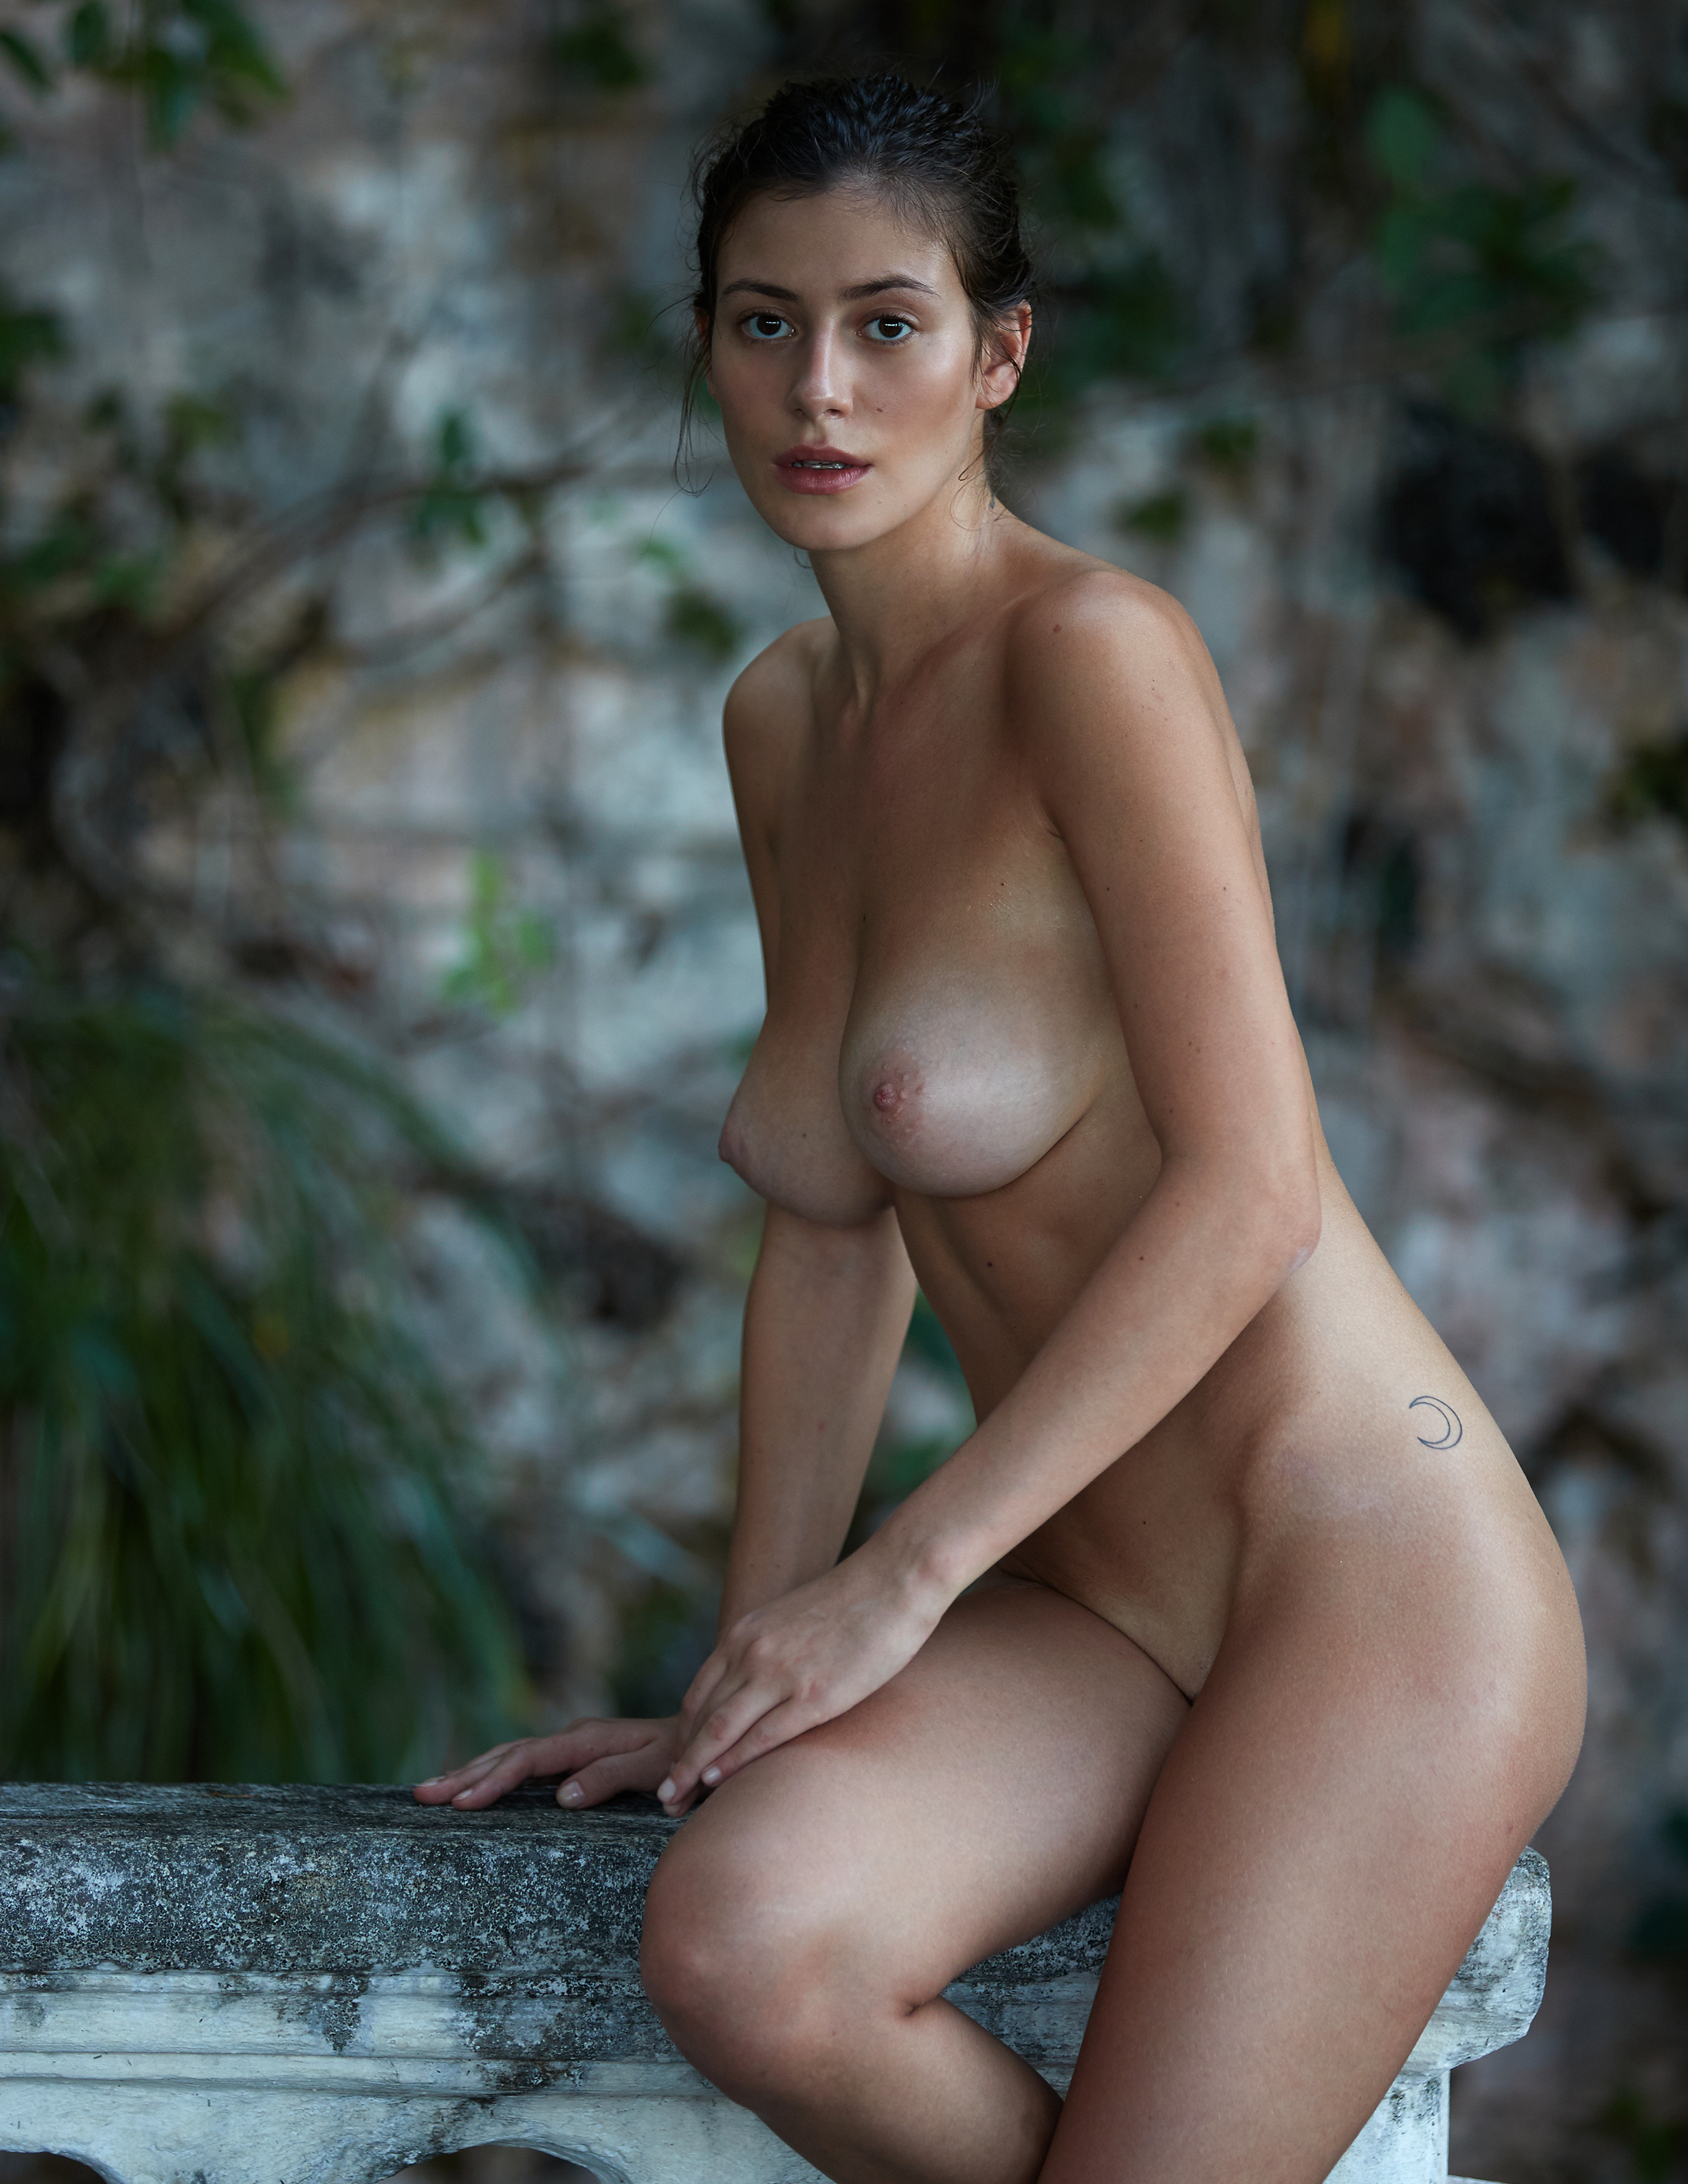 alejandra-guilmant-perfect-nude-body-erotic-treats-magazine-by-david-bellemere-10